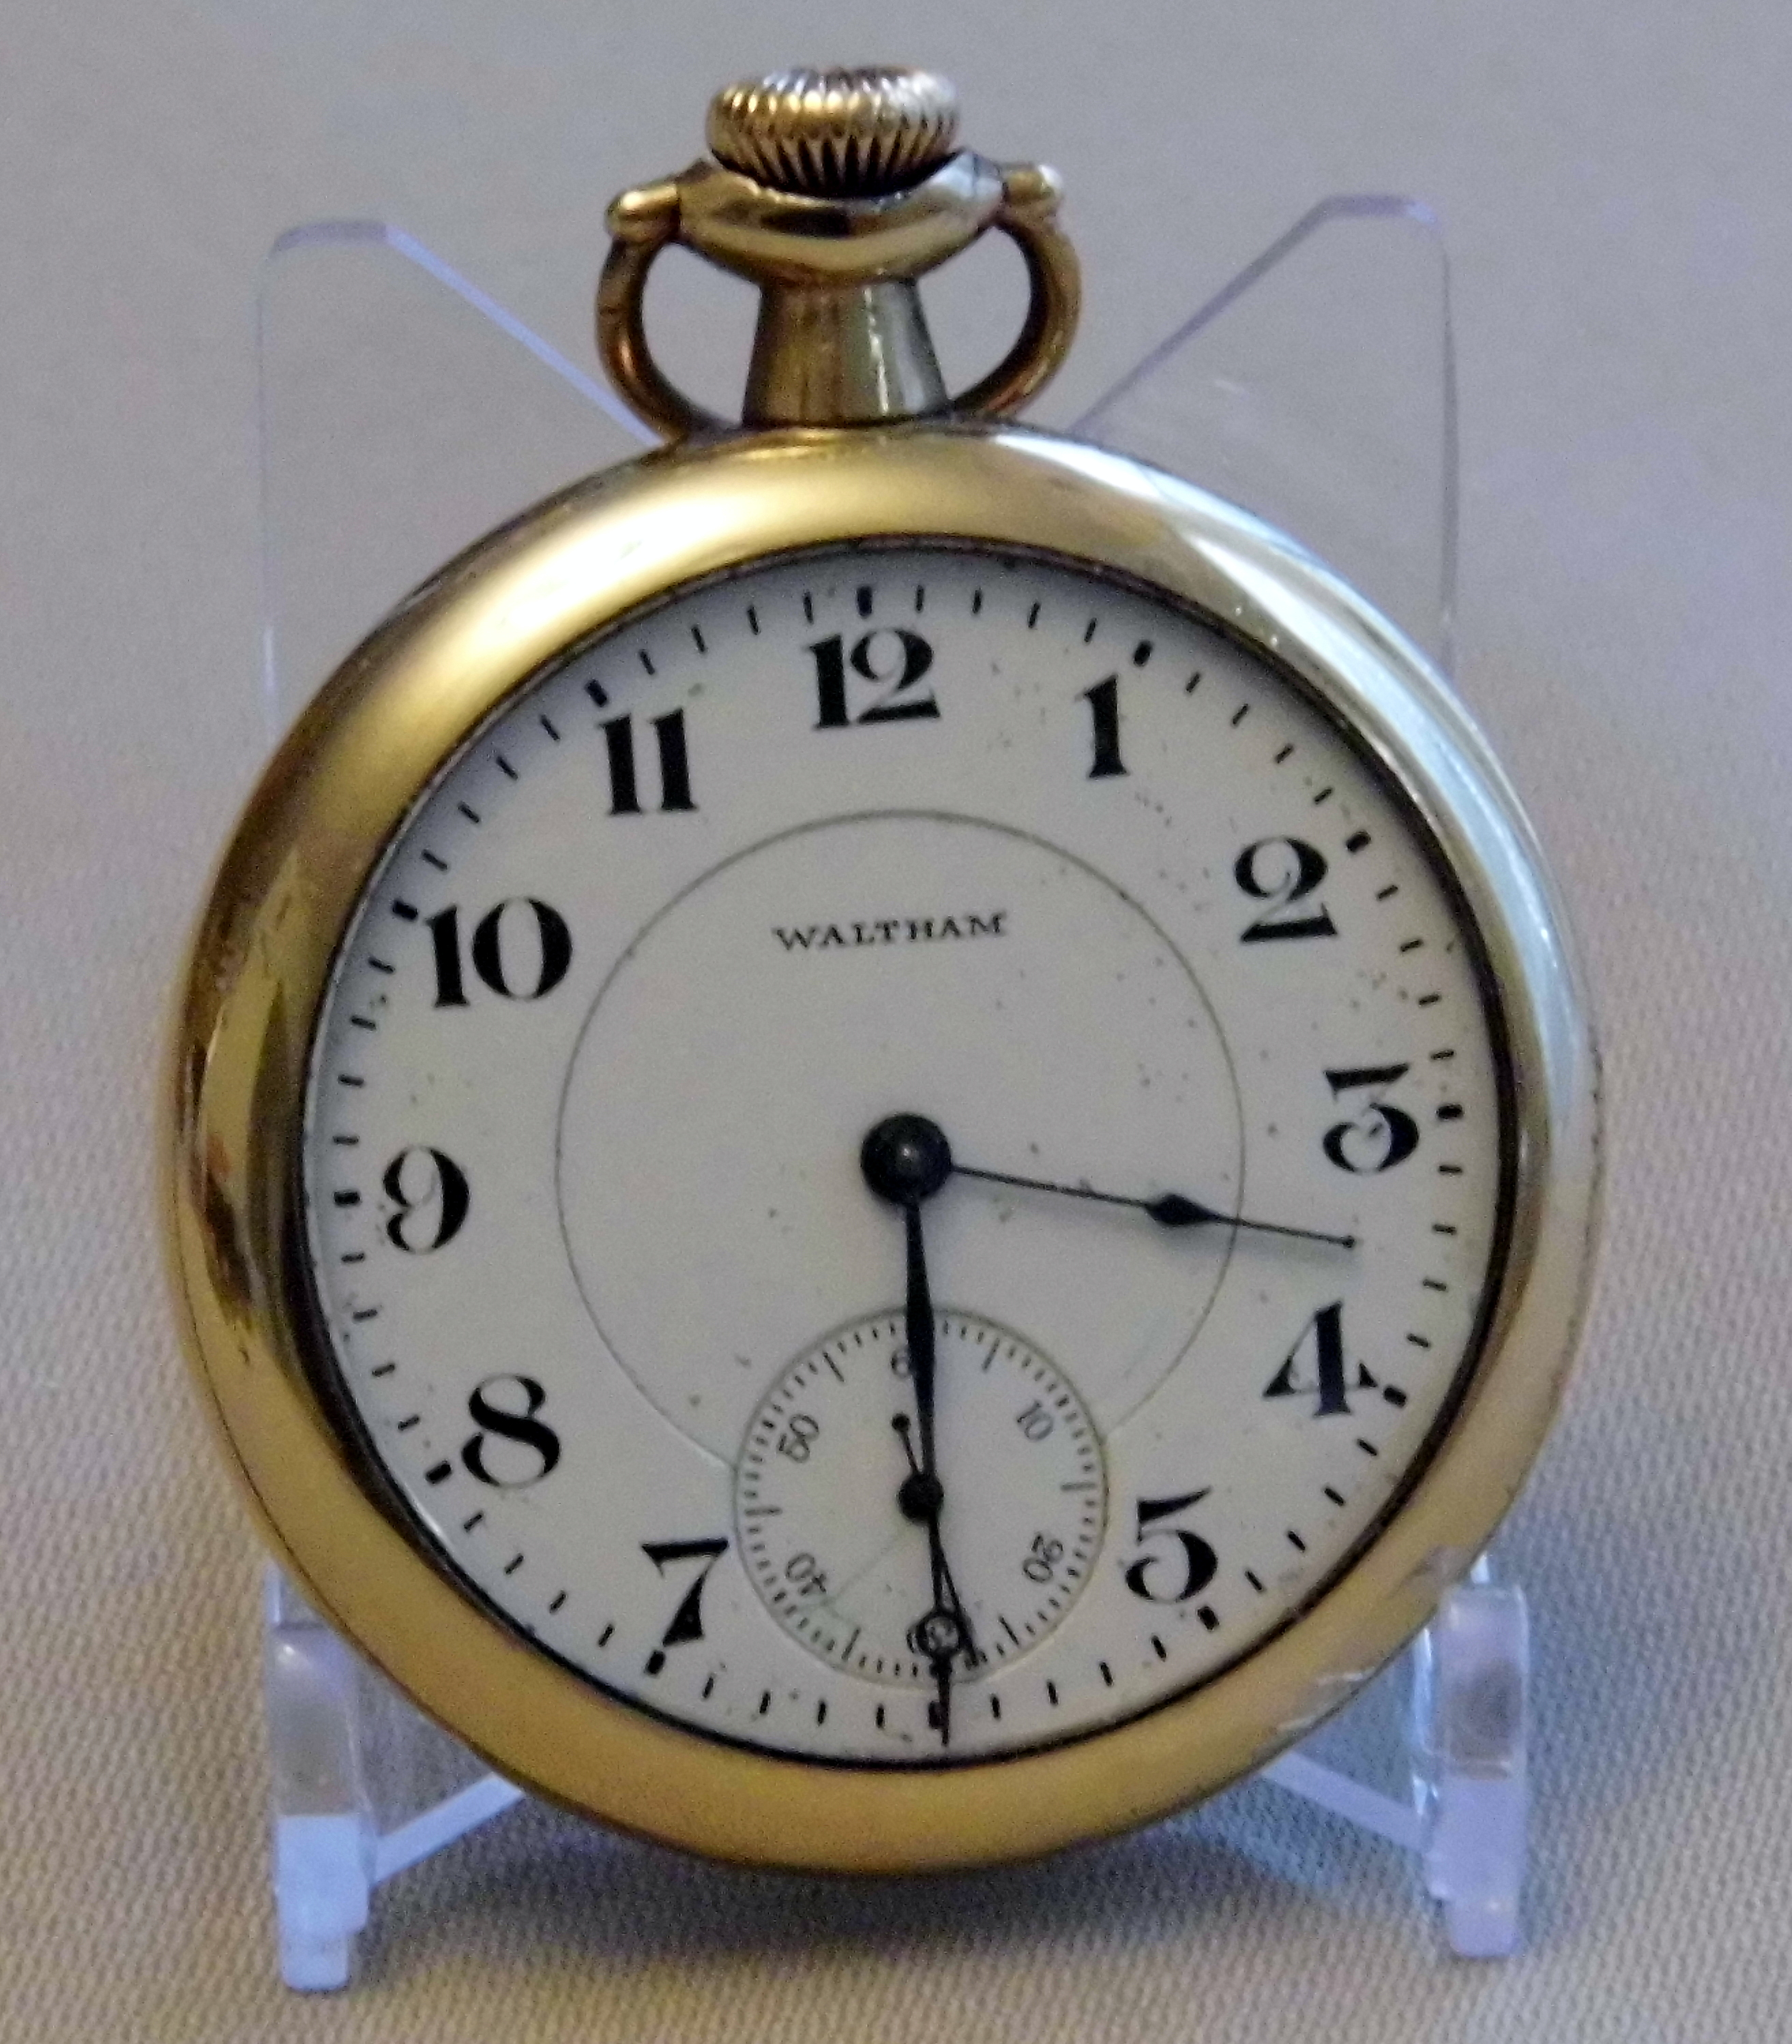 American Waltham Watch Company: History, Serial Numbers ...